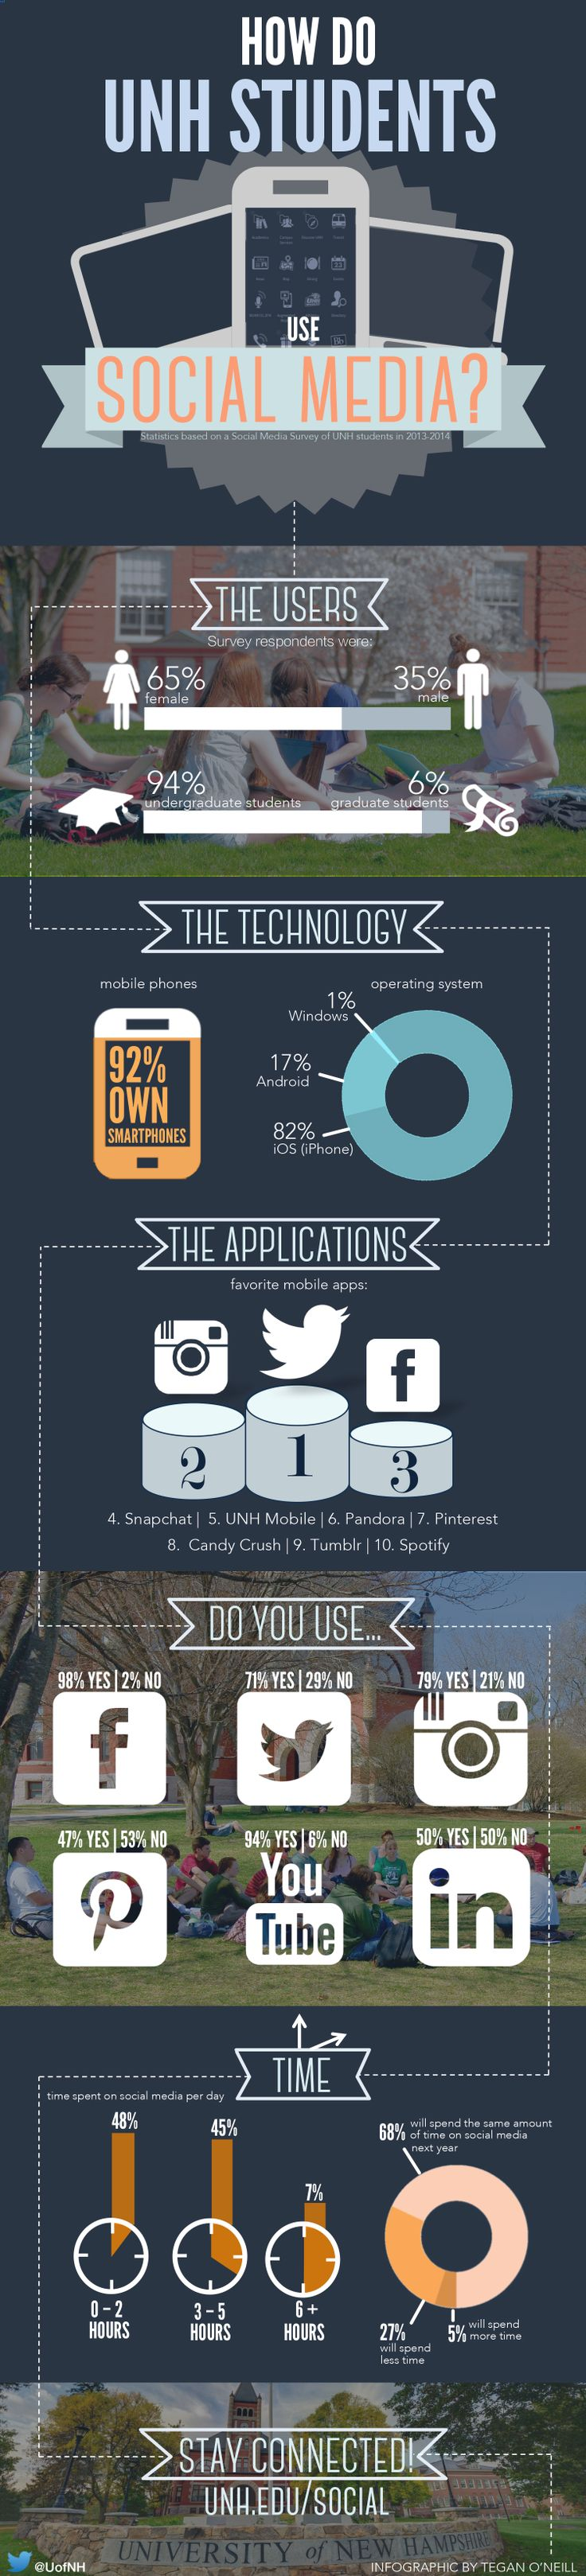 How do you UNH Students use social media in 2014?: Social Infografia, Infographic Socialmedia, Usan Los, Cómo Usan, Las Rede, Social Media, Media Infographic, Los Estudi, Colleges Students